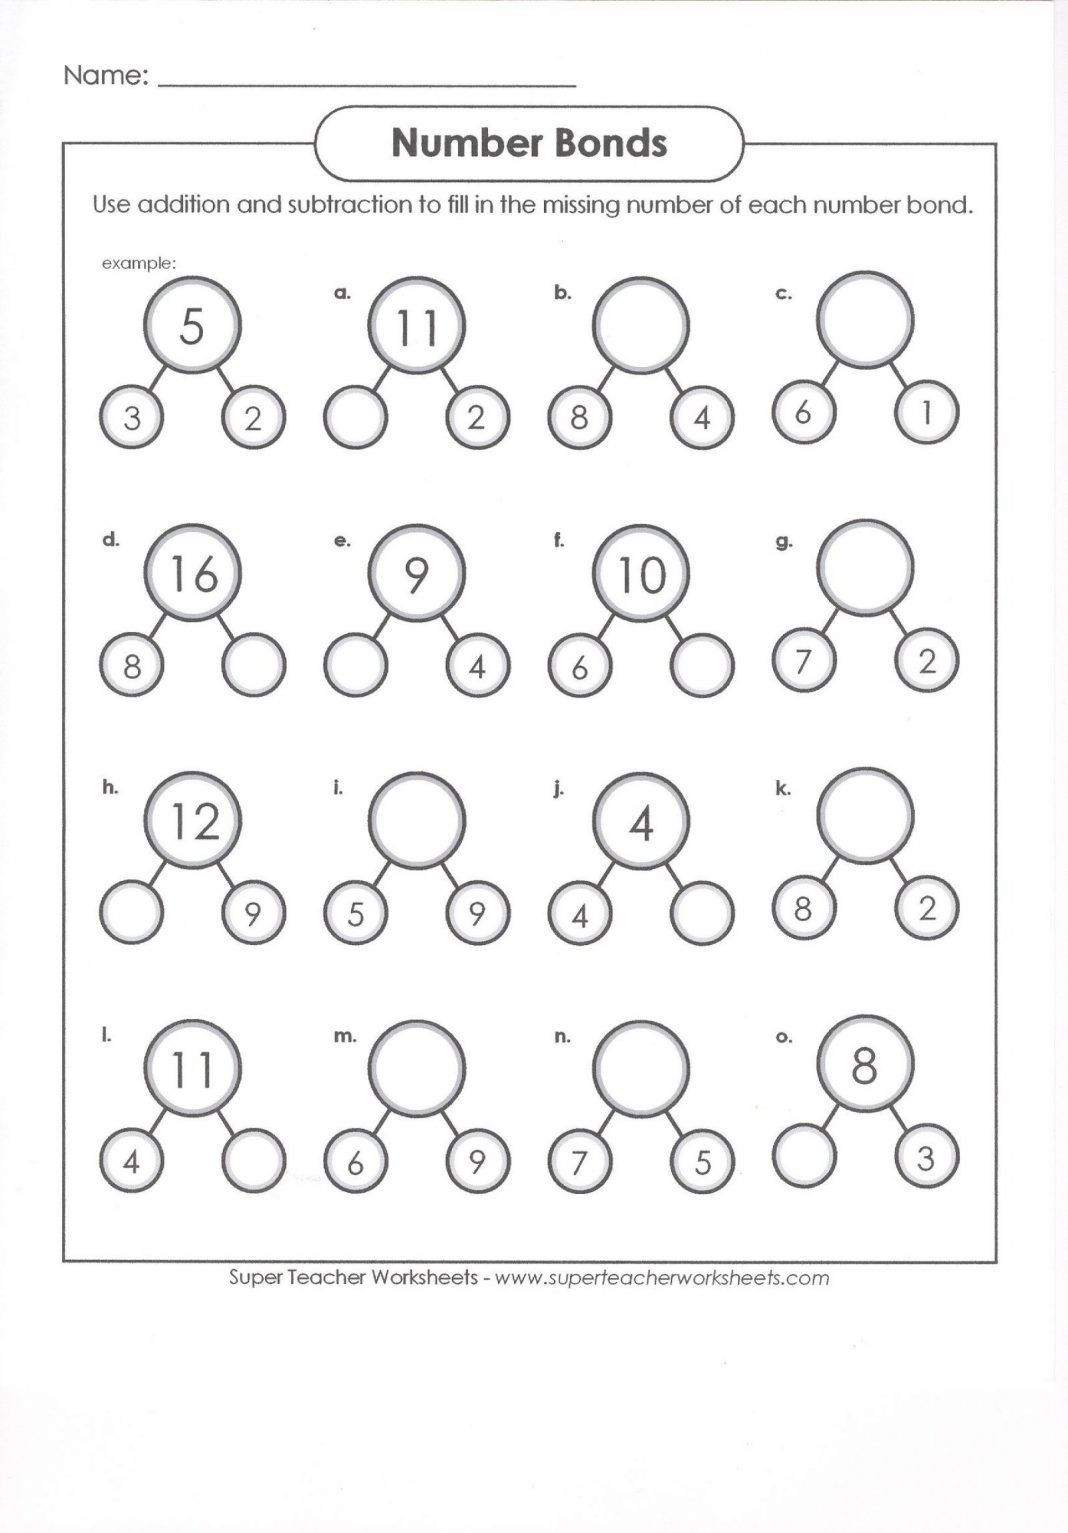 Number Bonds Worksheets 1st Grade 40 Clever 1st Grade Math Worksheets Design Bacamajalah In